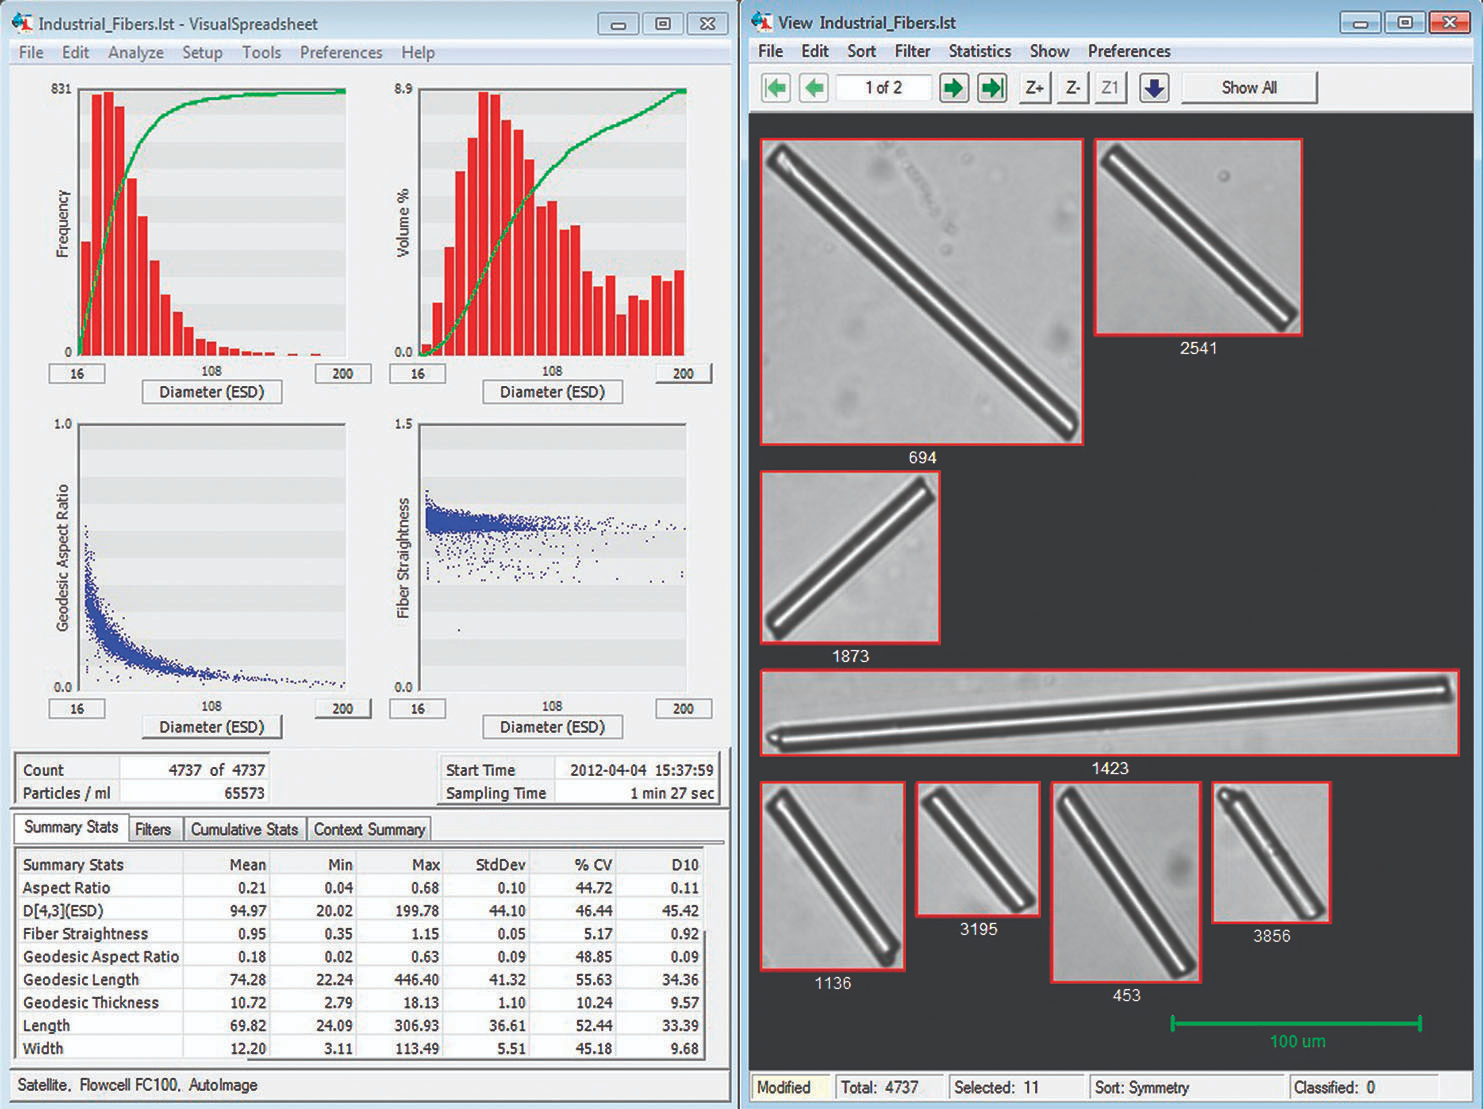 Screenshot of FlowCam analysis of industrial fibers.